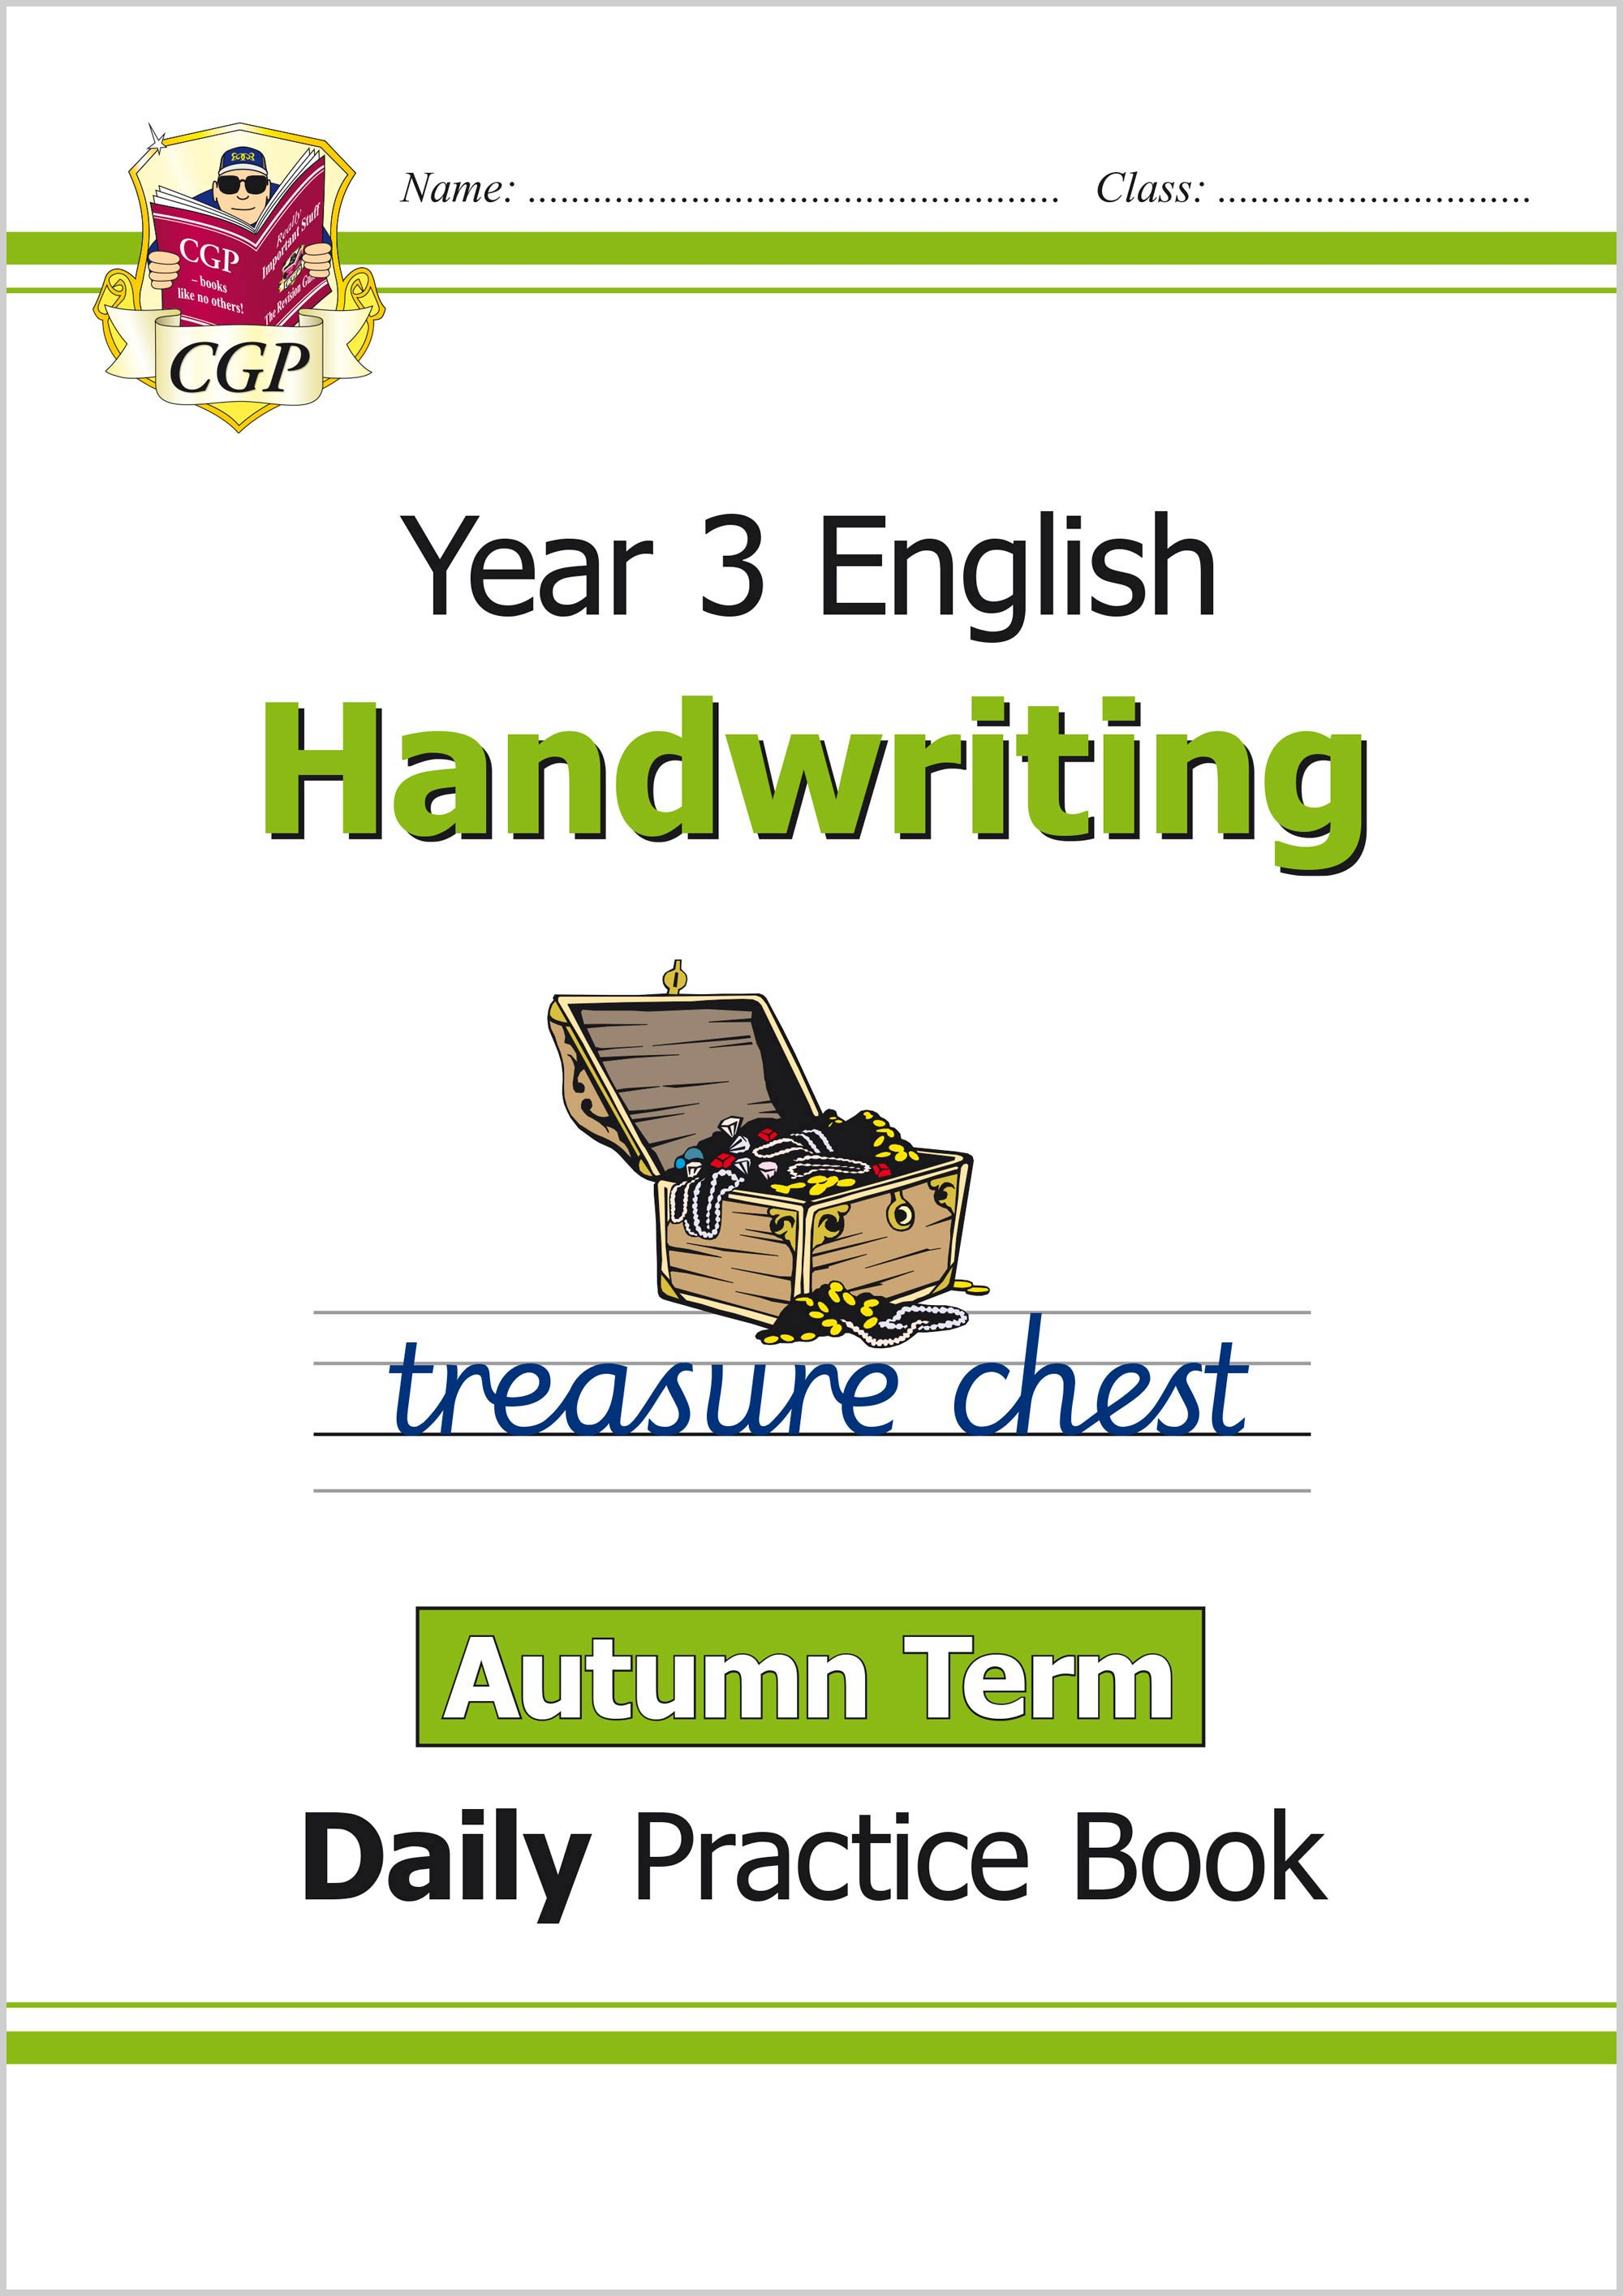 E3HWAU21 - New KS2 Handwriting Daily Practice Book: Year 3 - Autumn Term